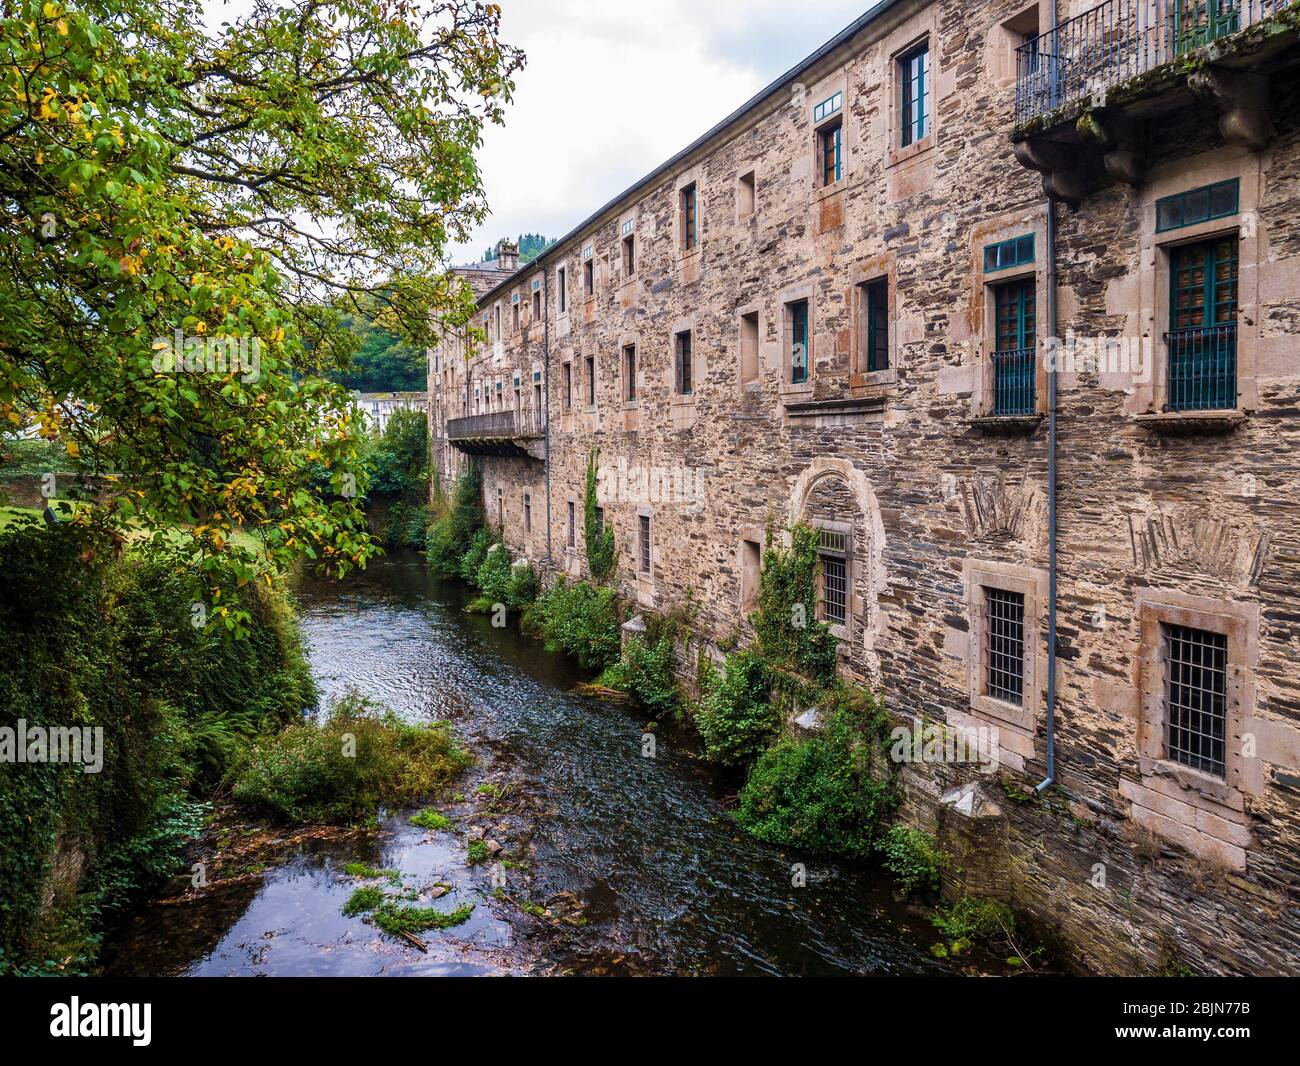 St Julian Of Samos High Resolution Stock Photography And Images Alamy